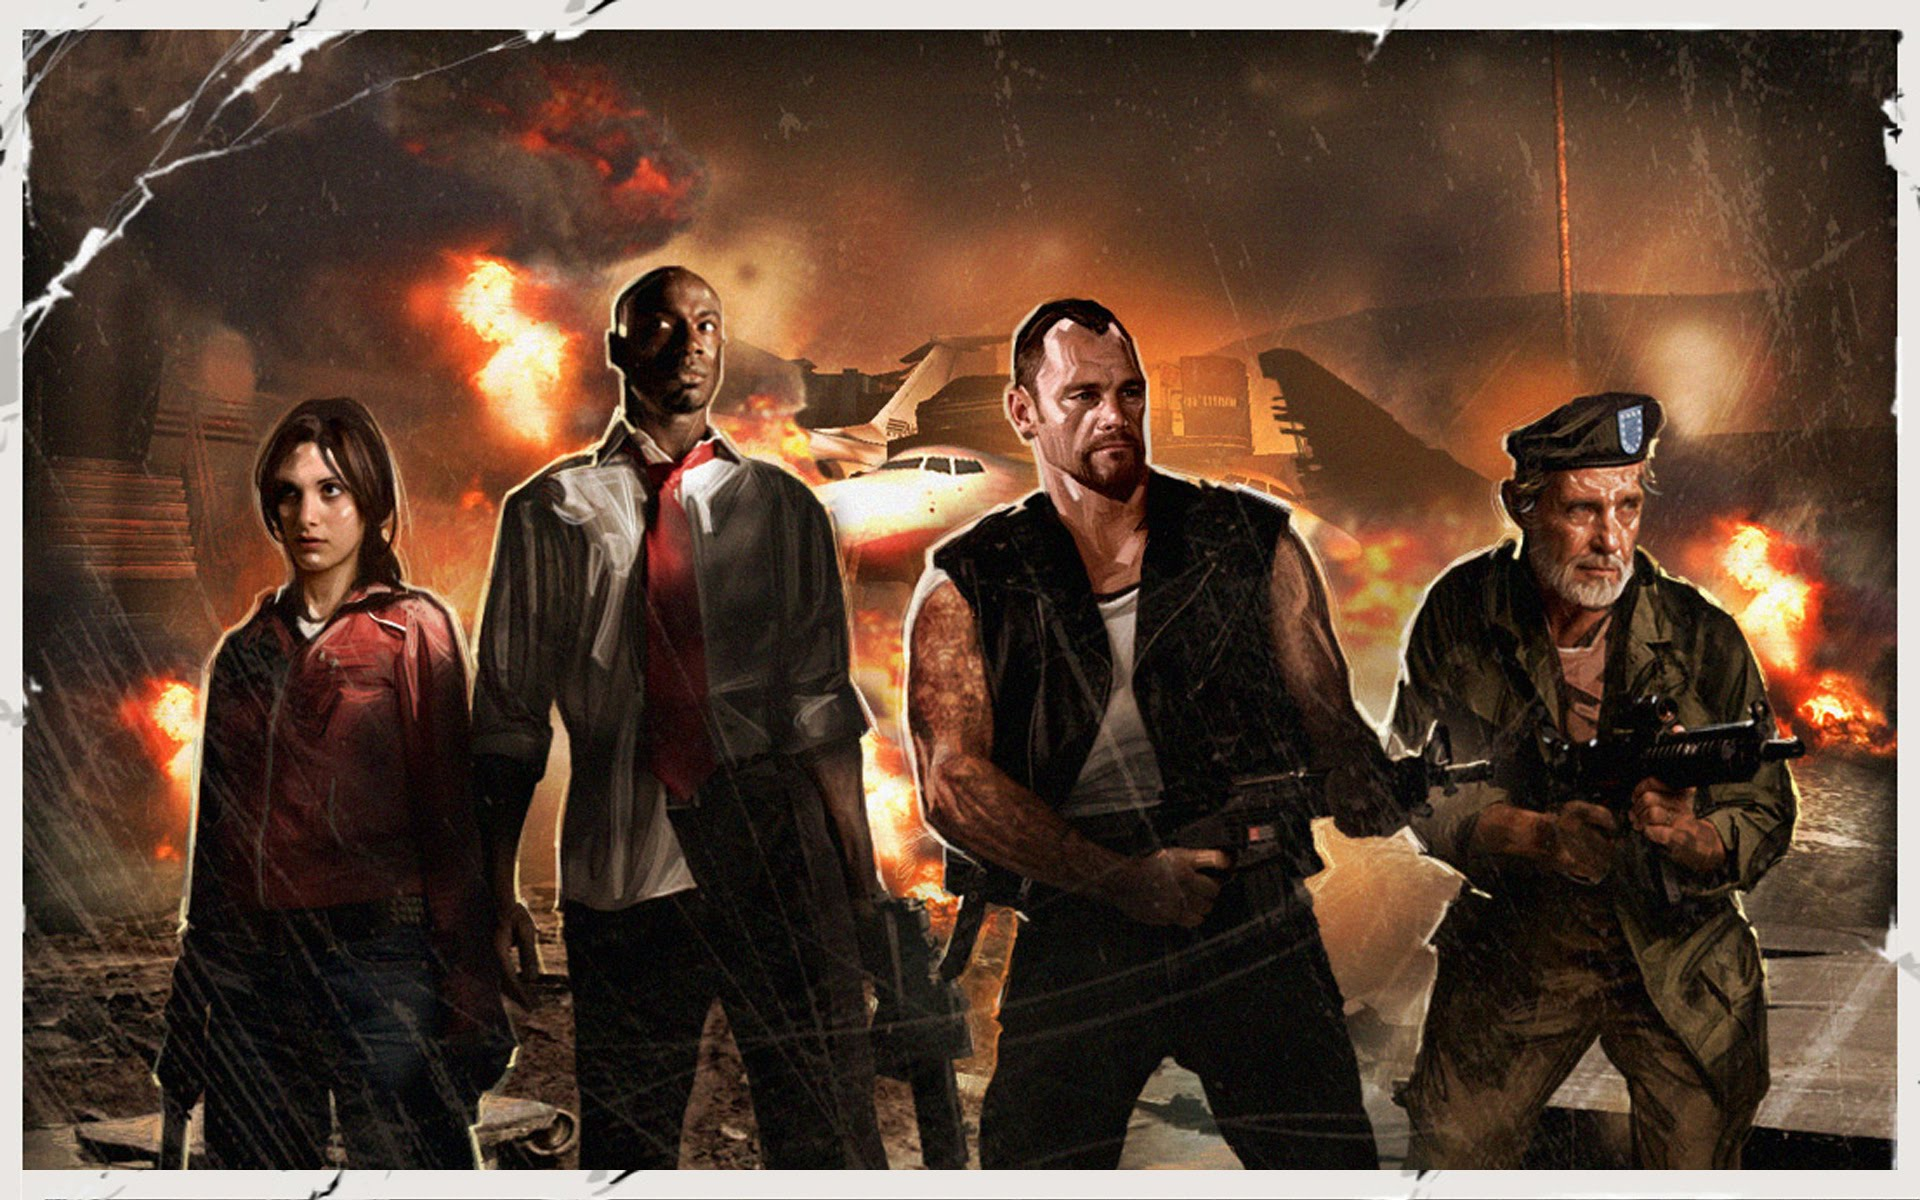 Left 4 Dead's original developer releases final, unfinished campaign